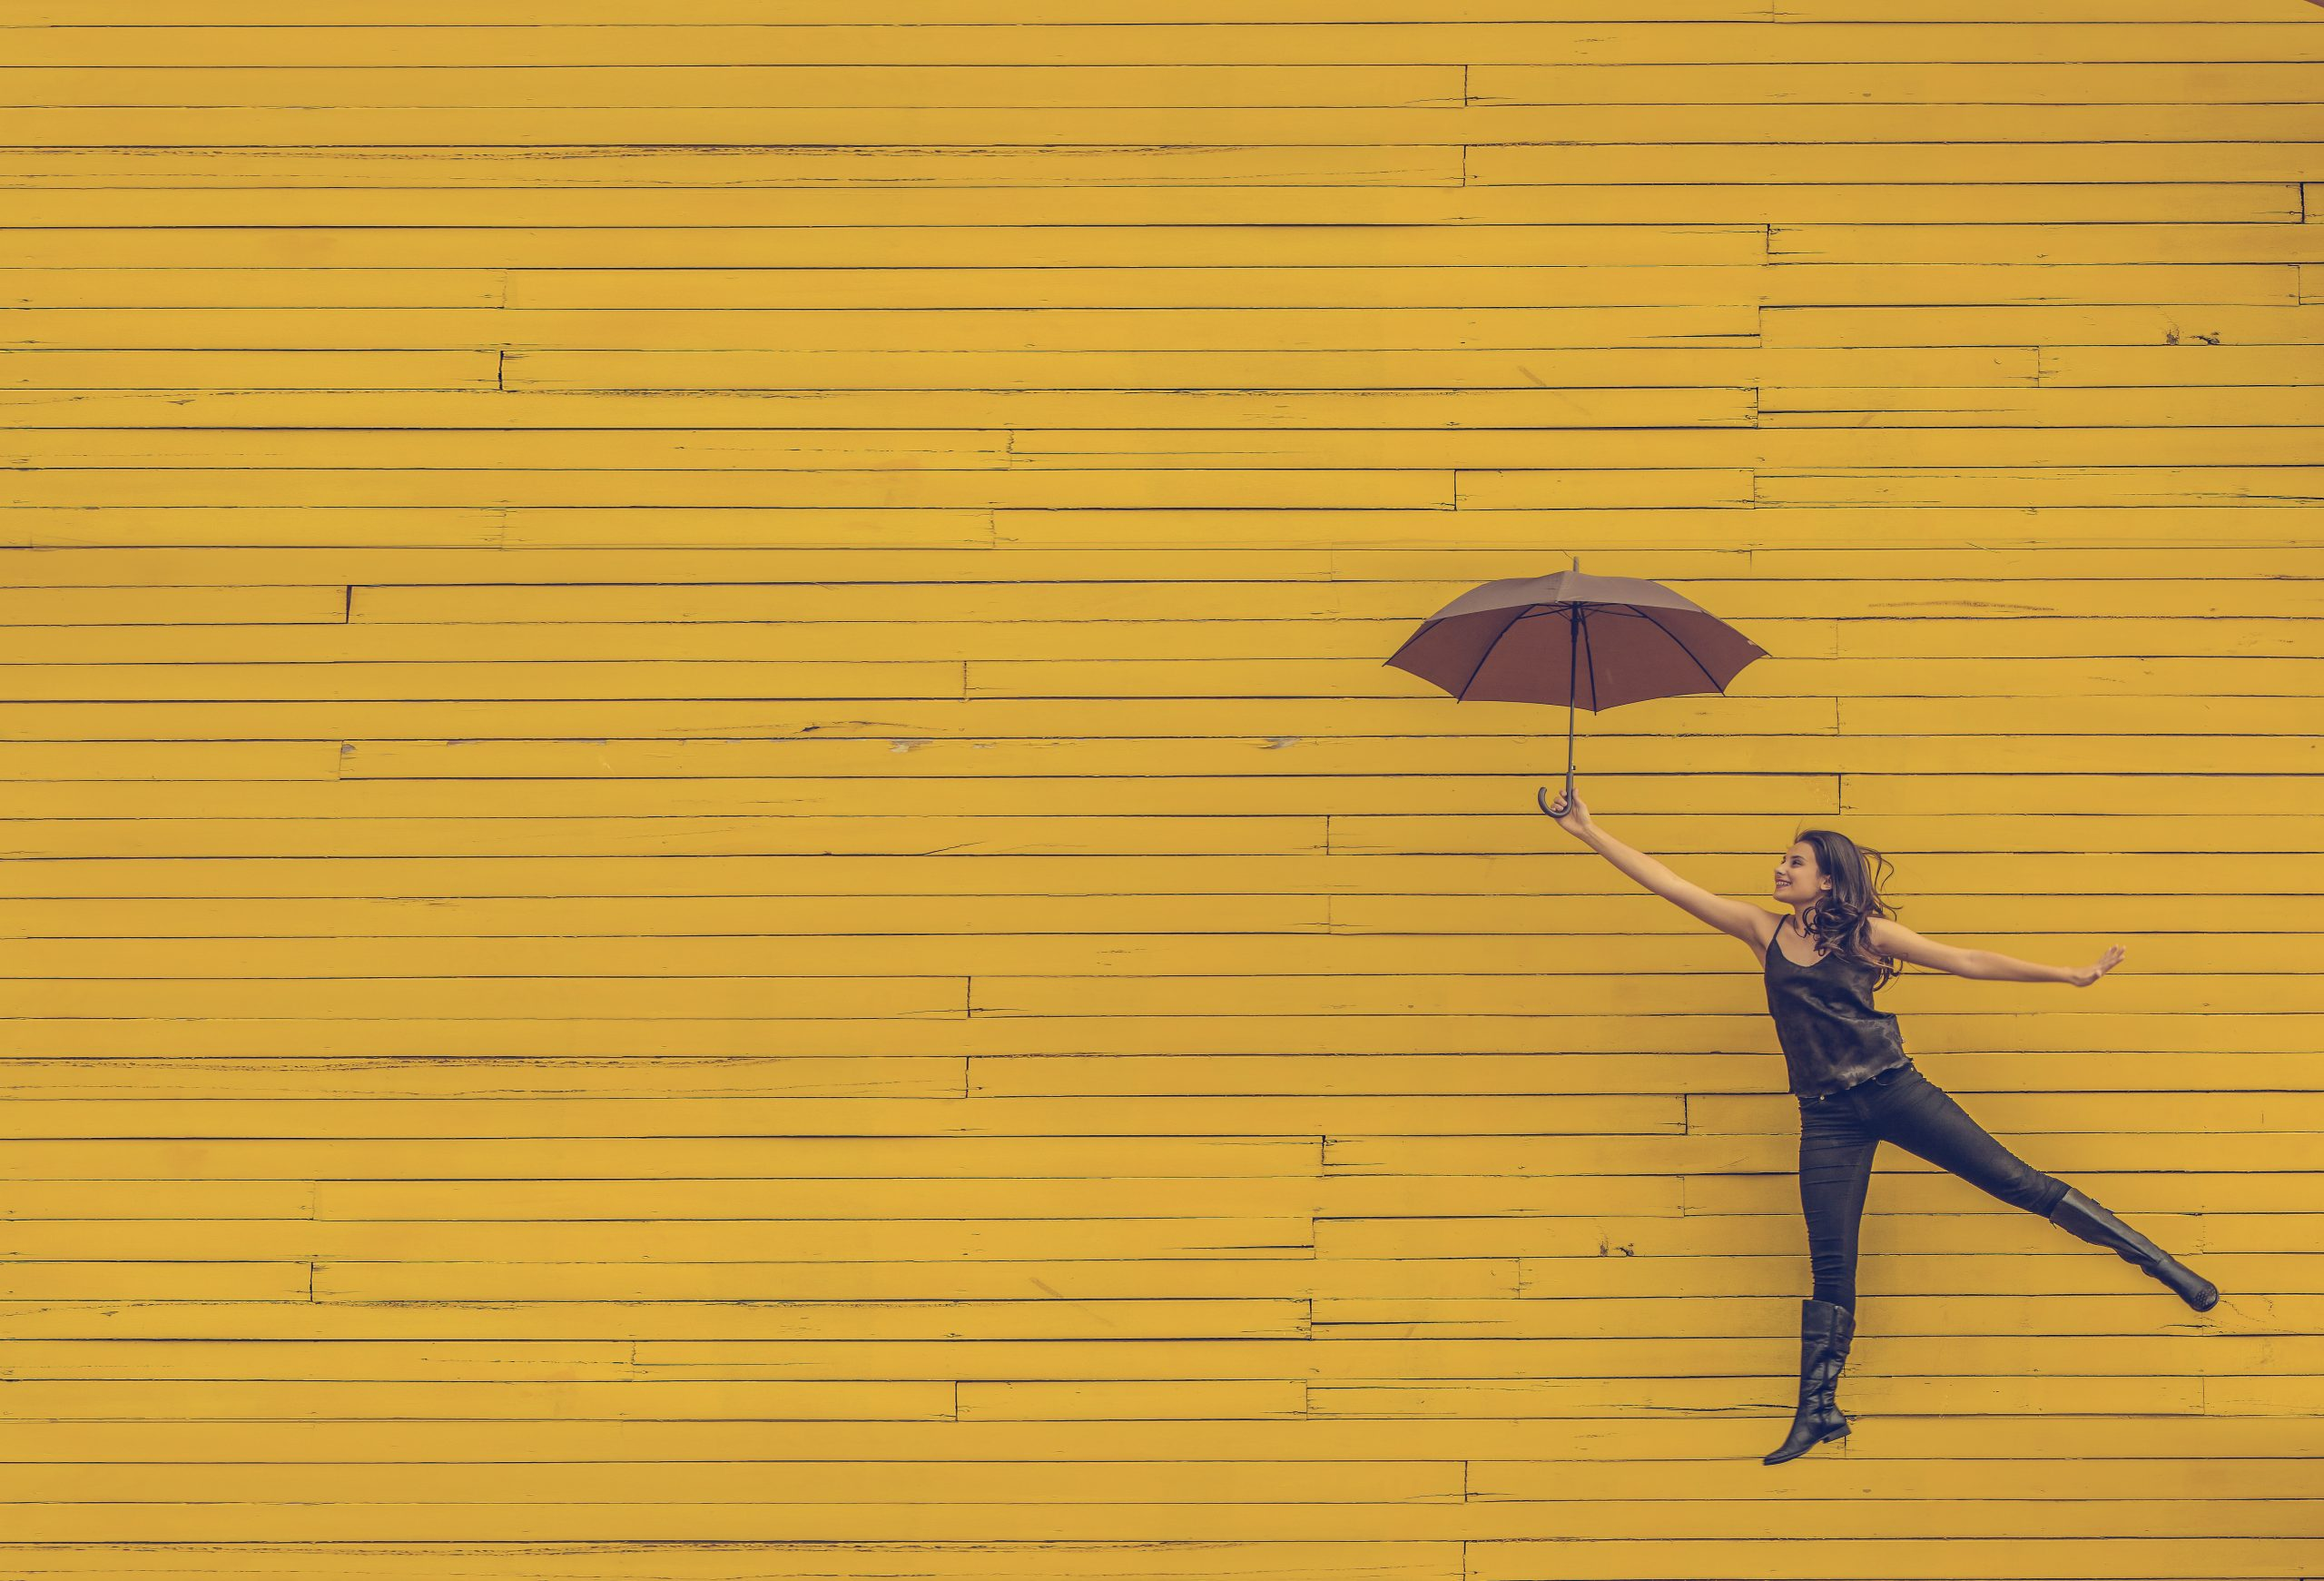 Woman holding an open umbrella in her outstretched arm against a background of yellow painted wooden boards